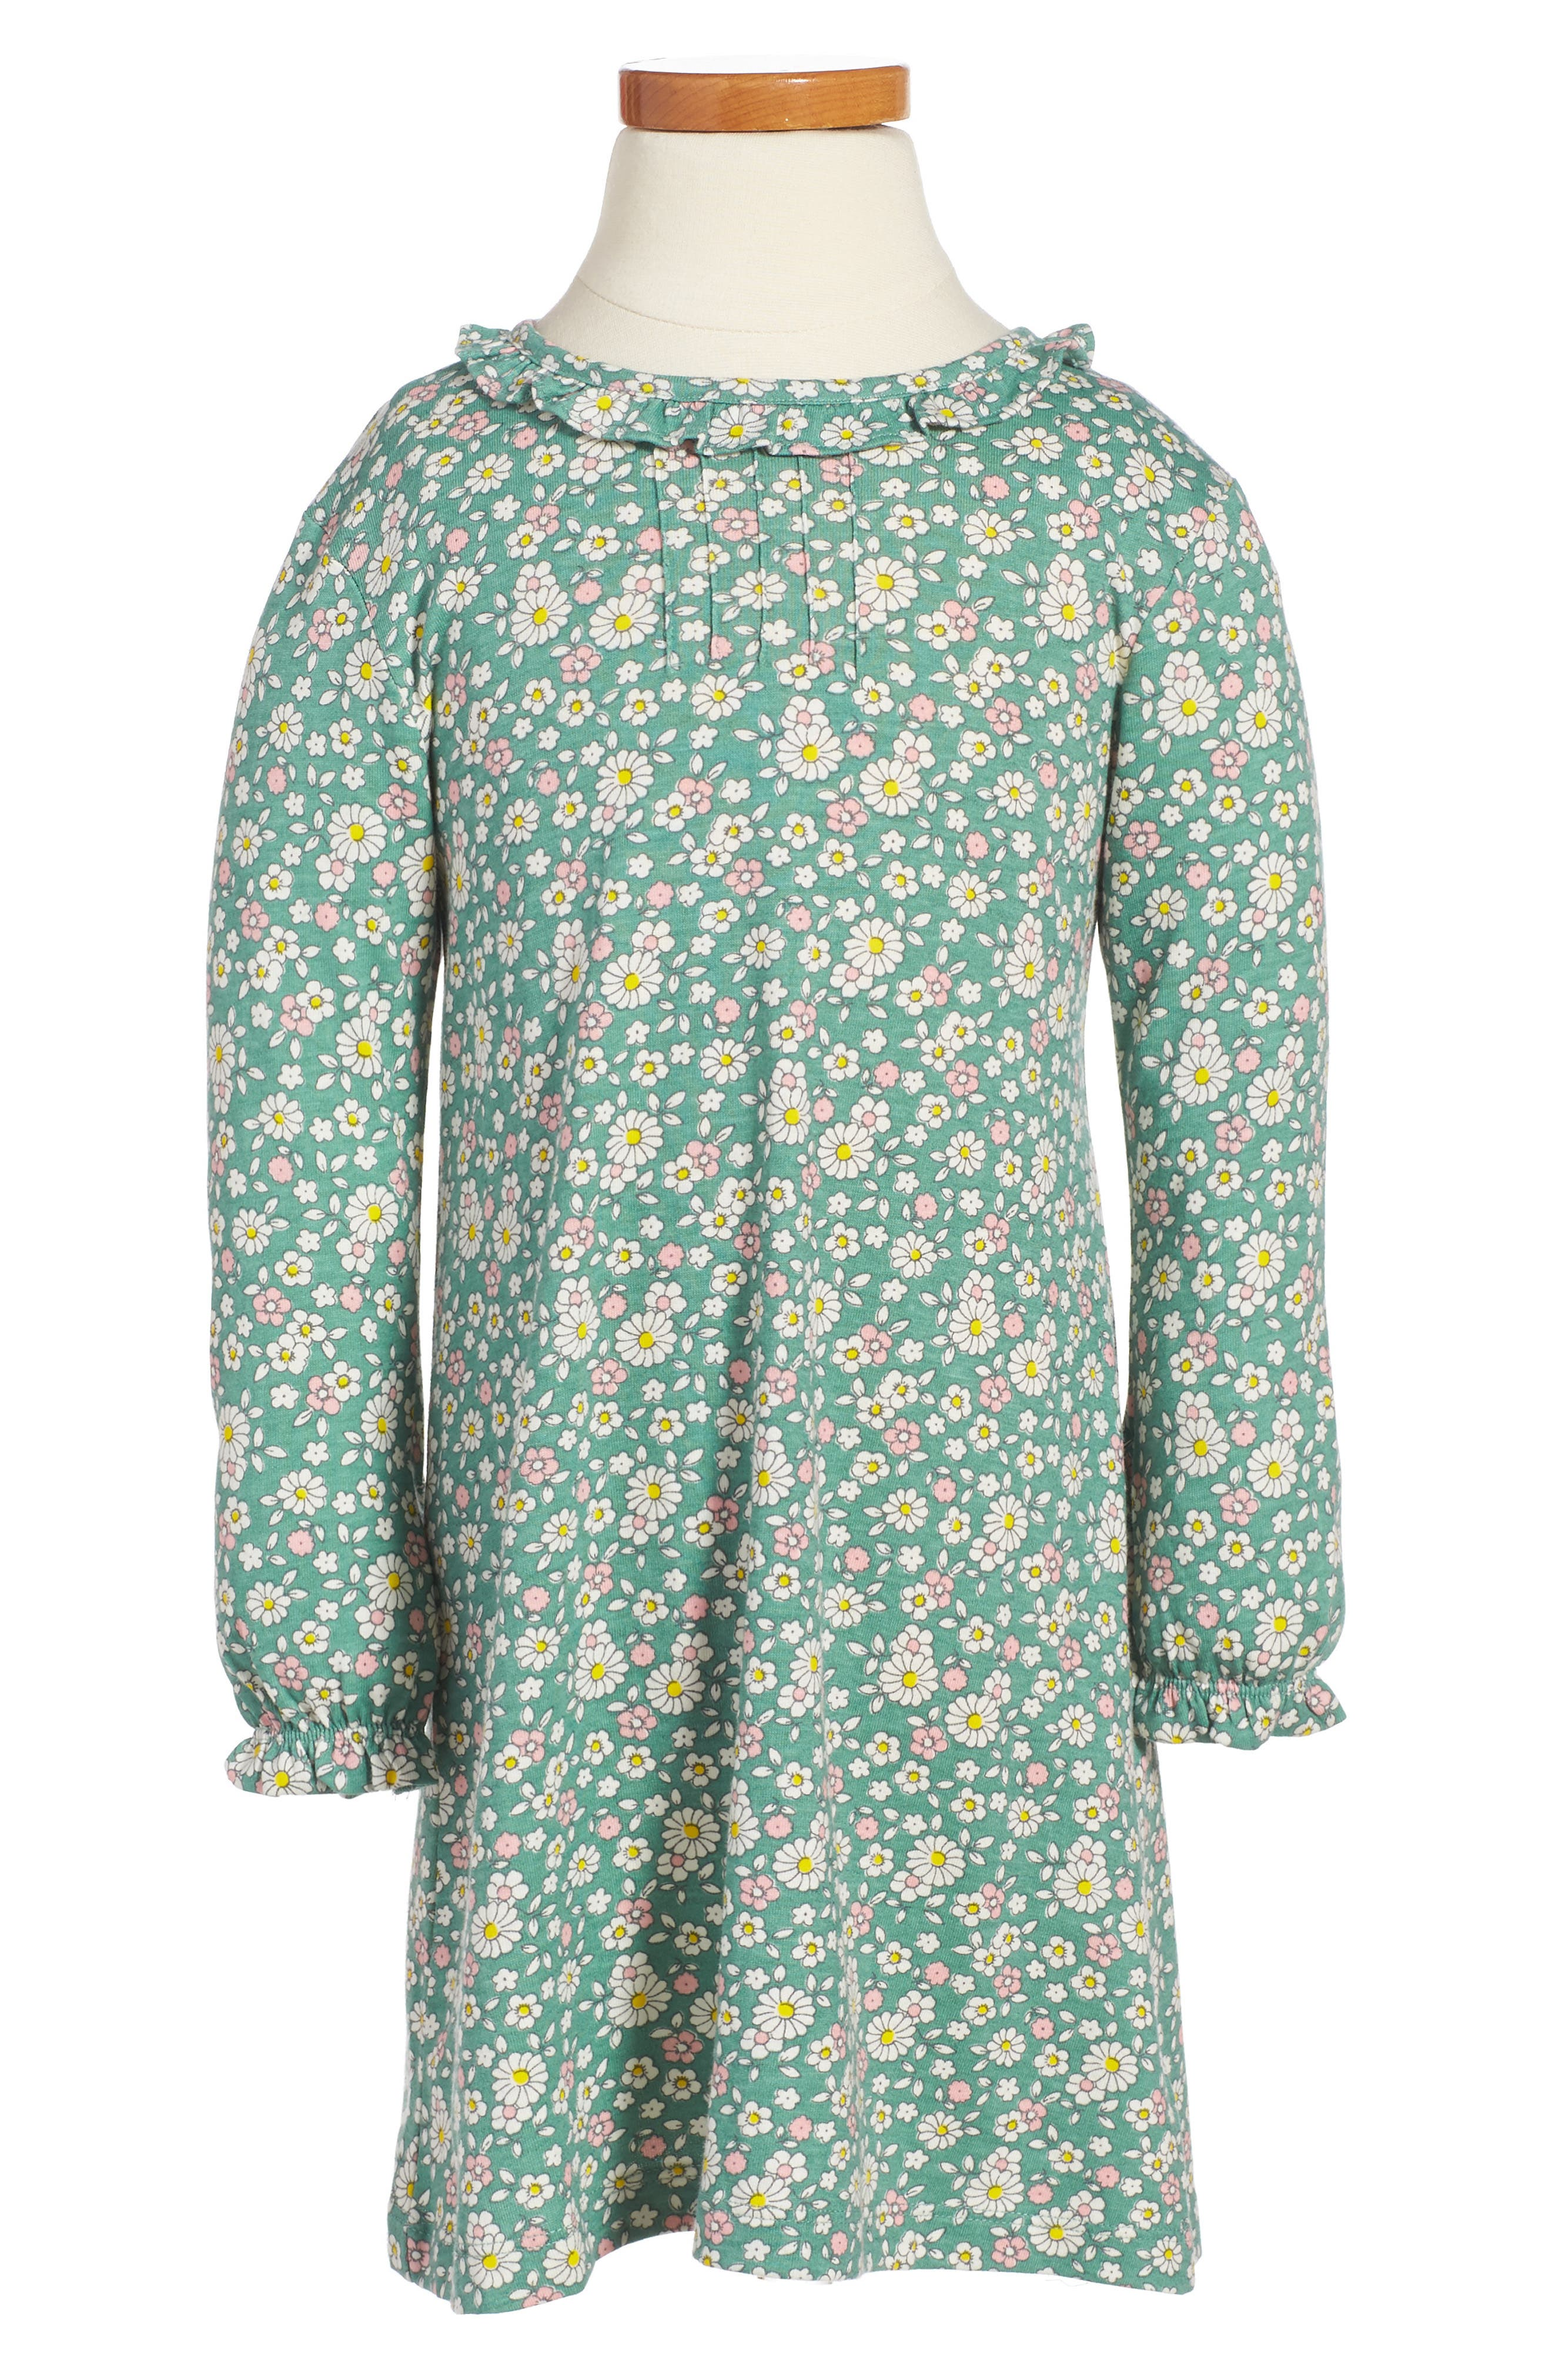 Alternate Image 1 Selected - Mini Boden Pretty Print Jersey Dress (Baby Girls & Toddler Girls)